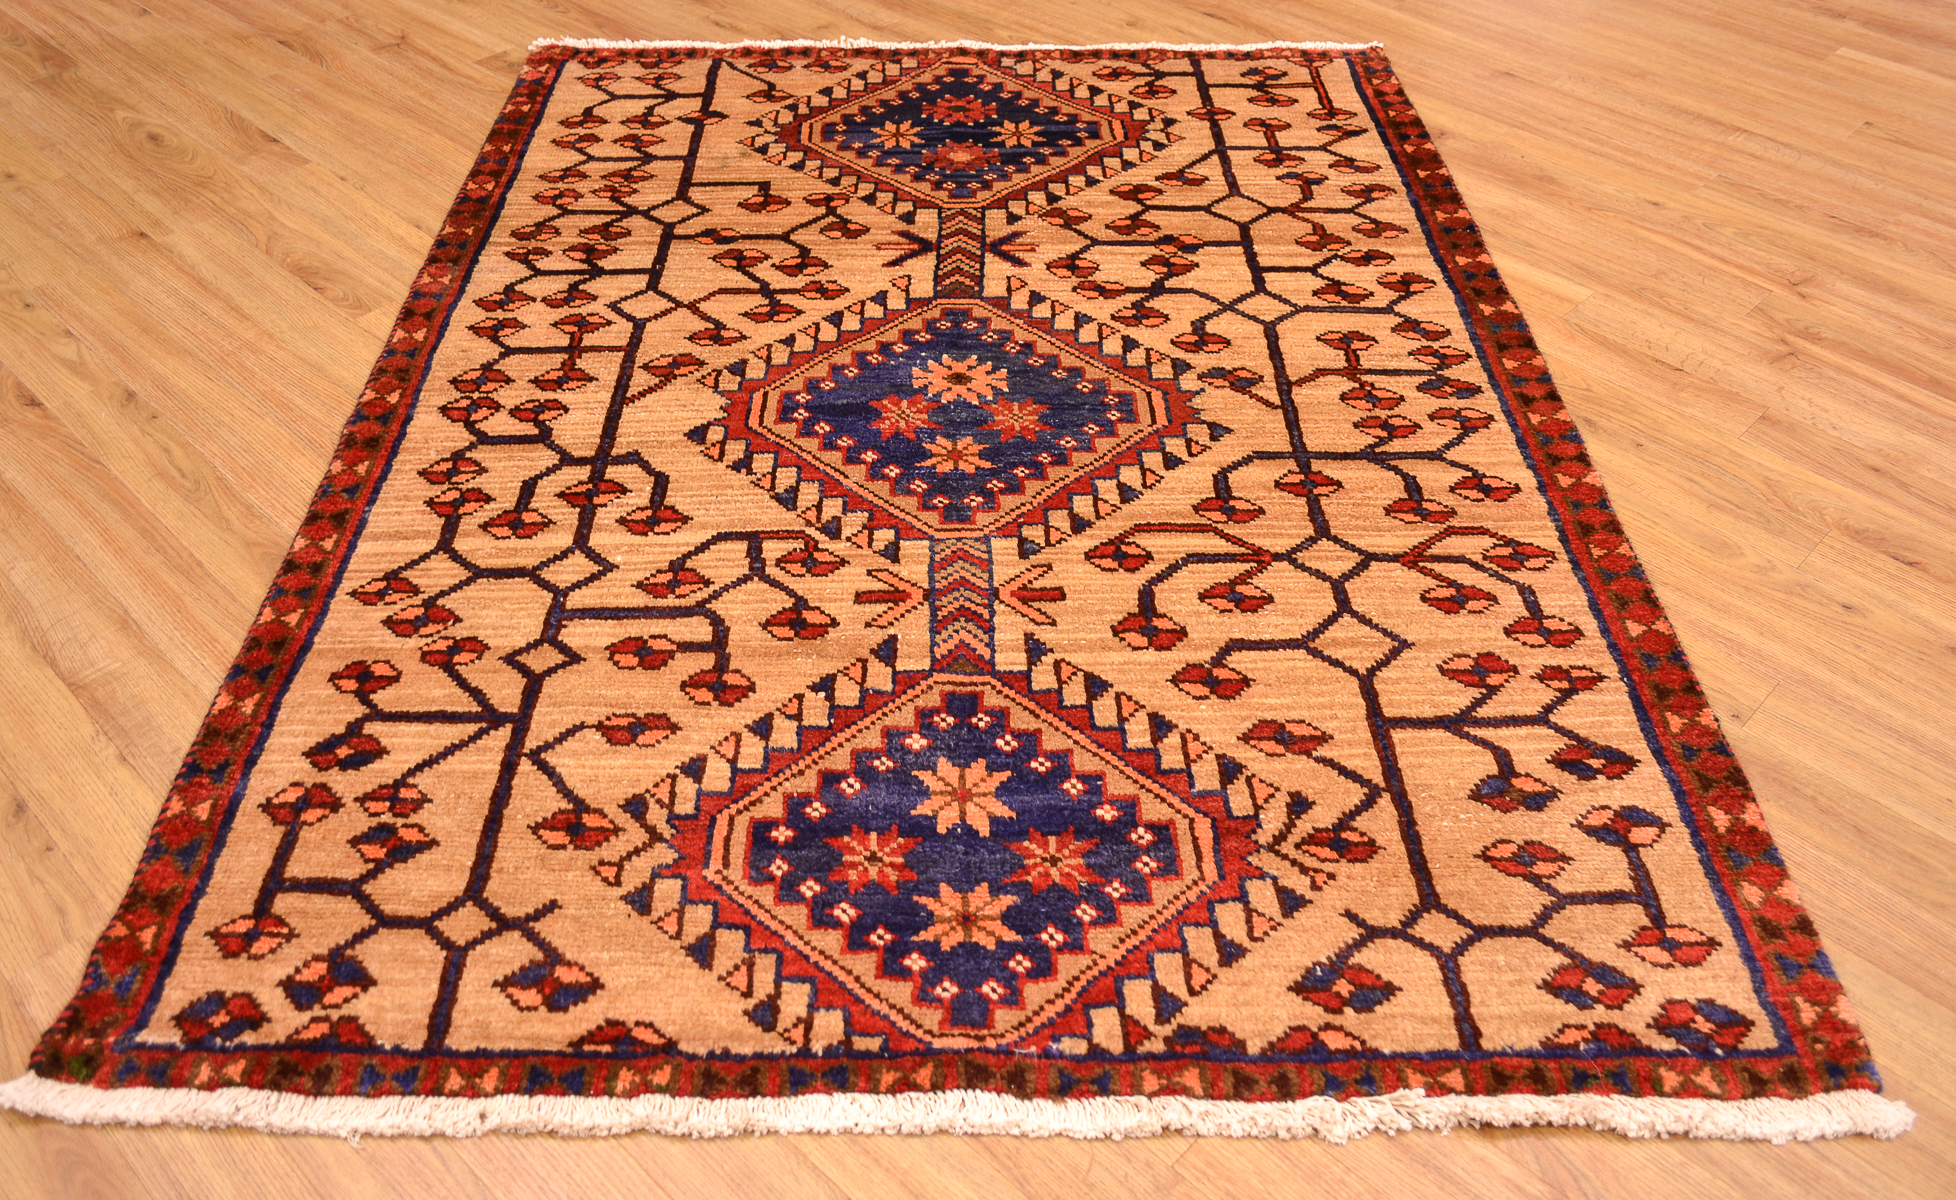 Old Gabbeh Nomad Rug 1 59x1 20m The Oriental Rug Merchant